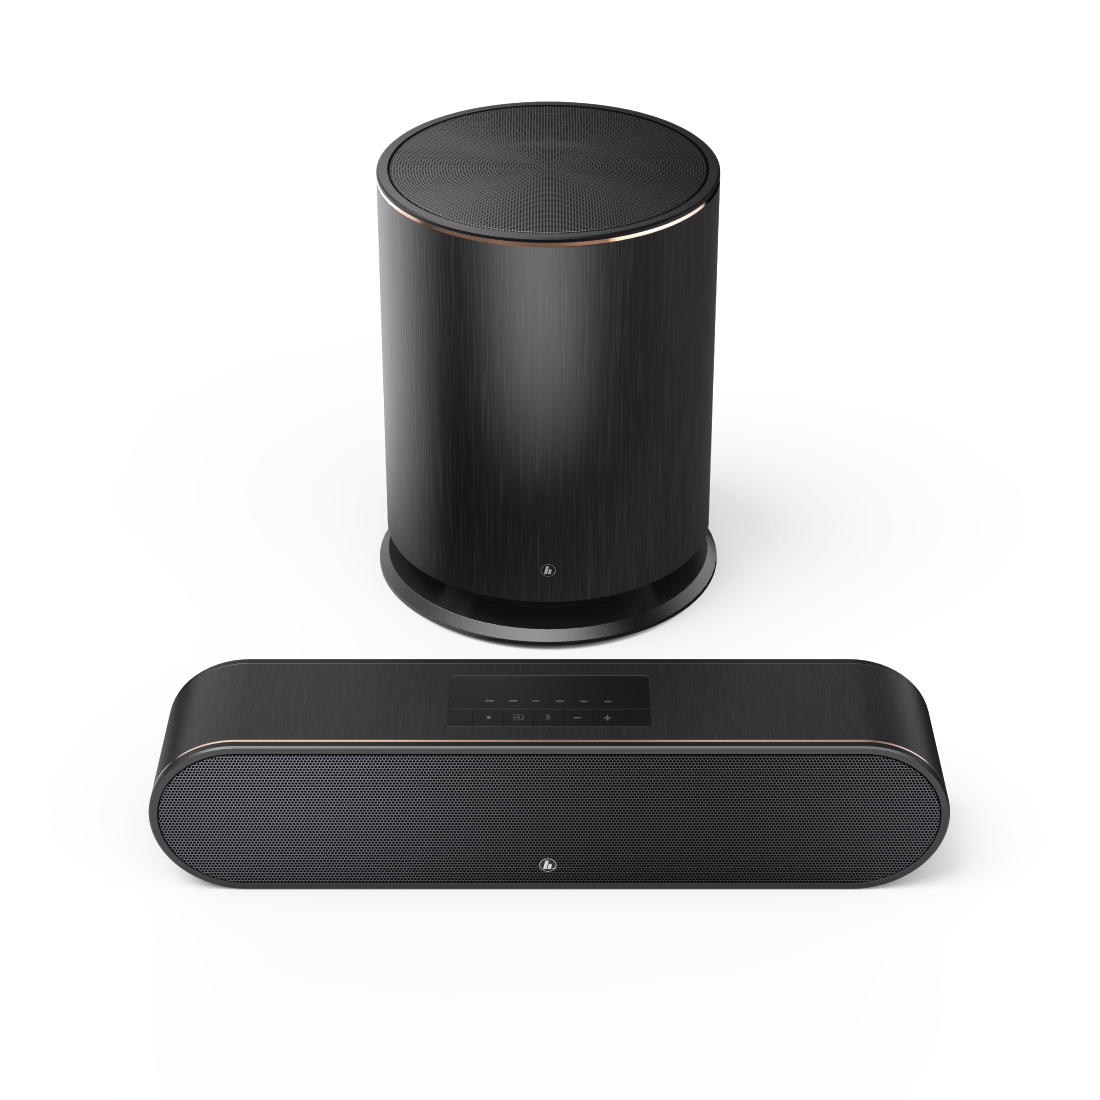 "abx Druckfähige Abbildung - Hama, Smart-Slim-Soundbar 2.1 ""SIRIUM3800ABT"" Wireless Subwoofer/Alexa/Bluetooth®"